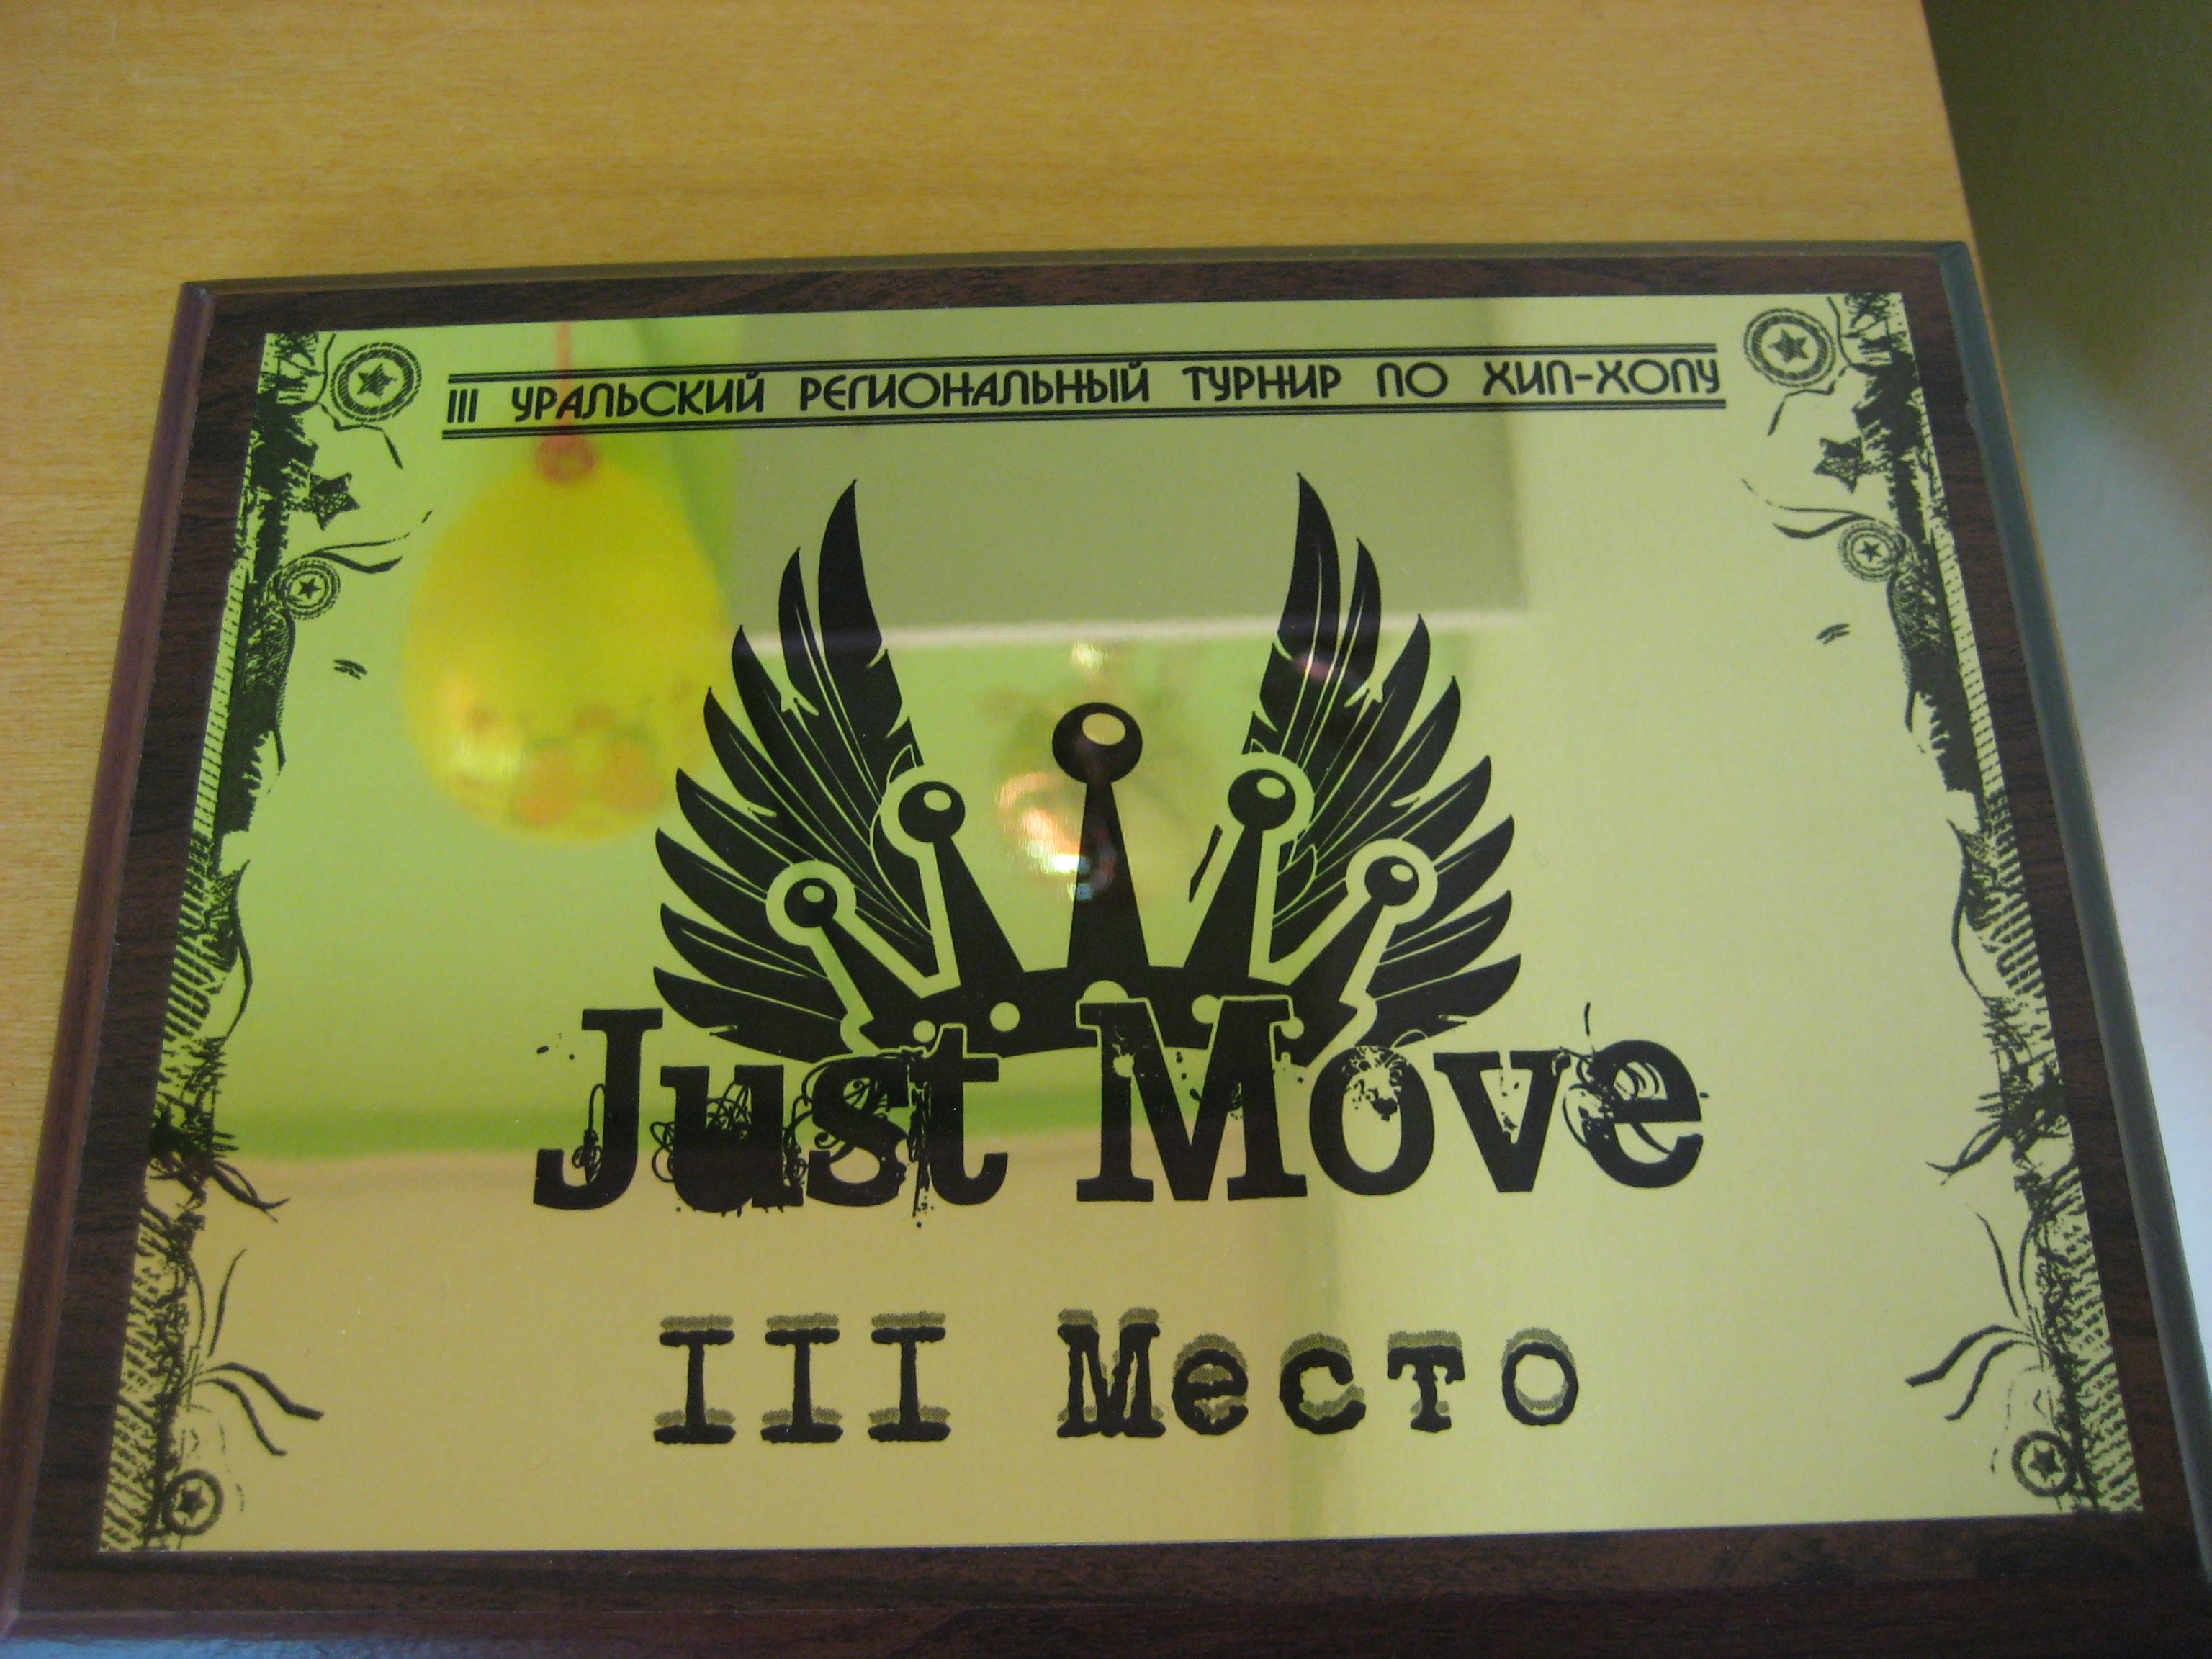 Study-On: Just Move 2011